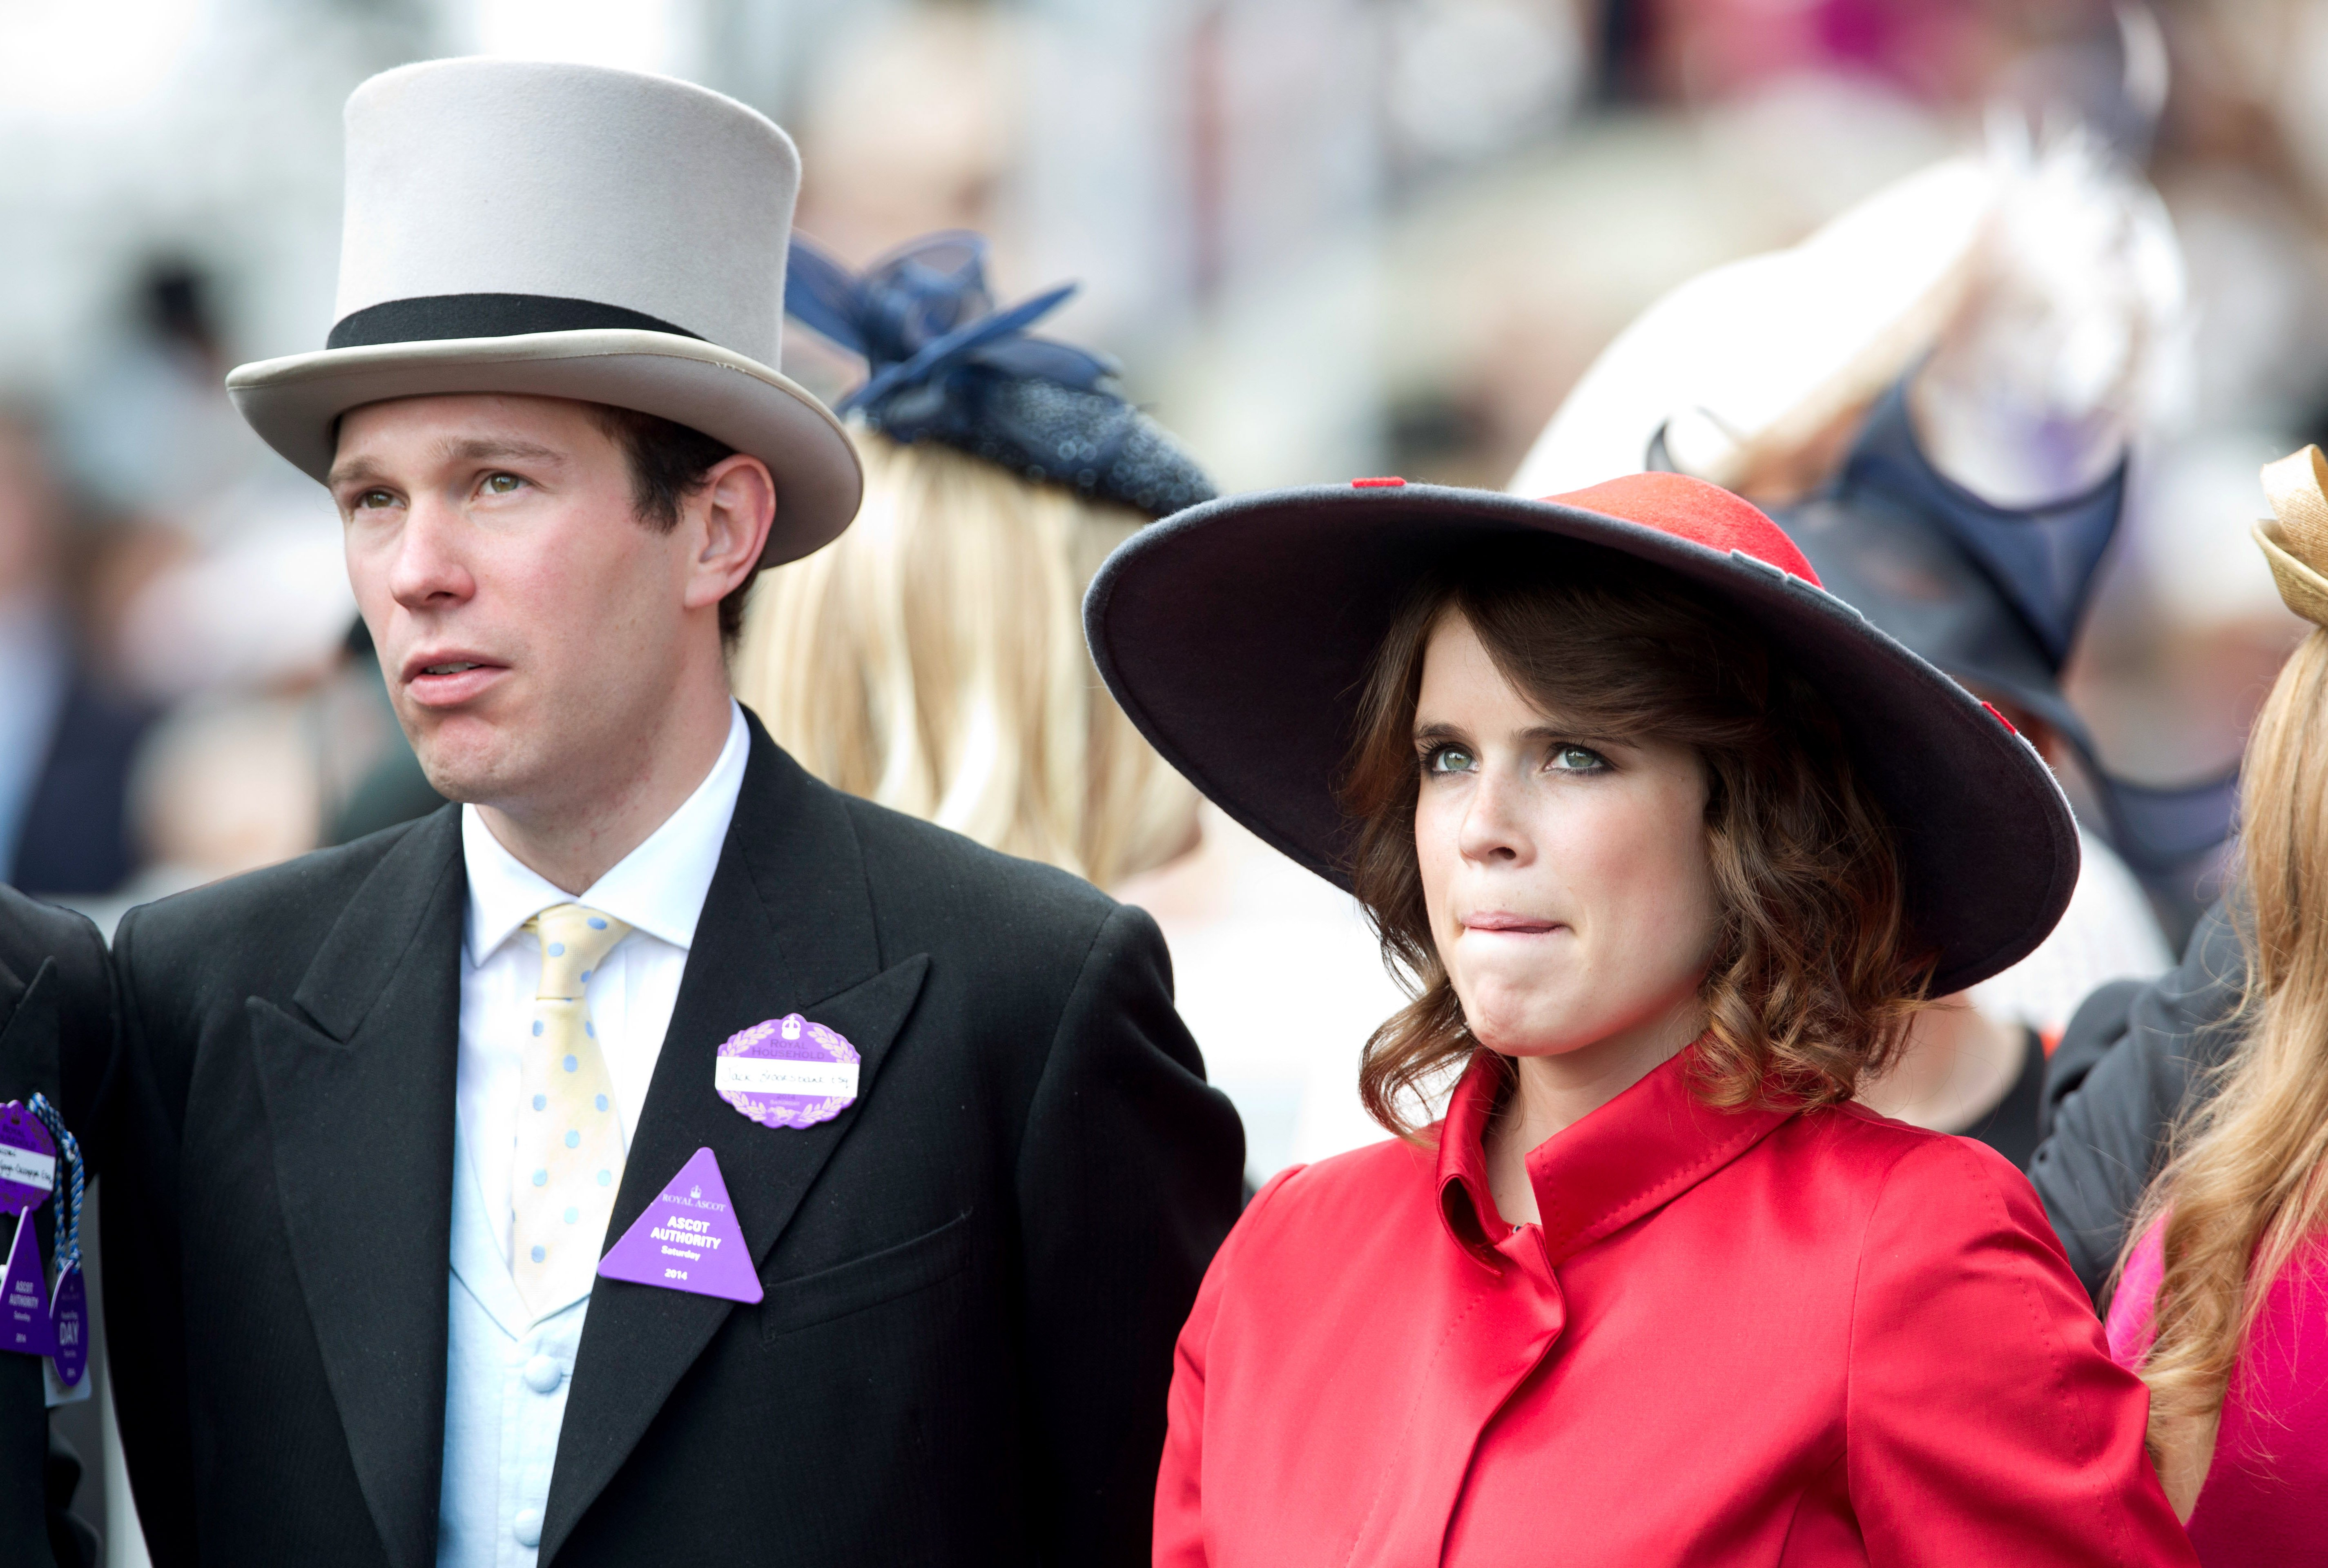 Jack Brooksbank and Princess Eugenie attend Day 5 of Royal Ascot at Ascot Racecourse on June 21, 2014 in Ascot, England.   Source: Getty Images